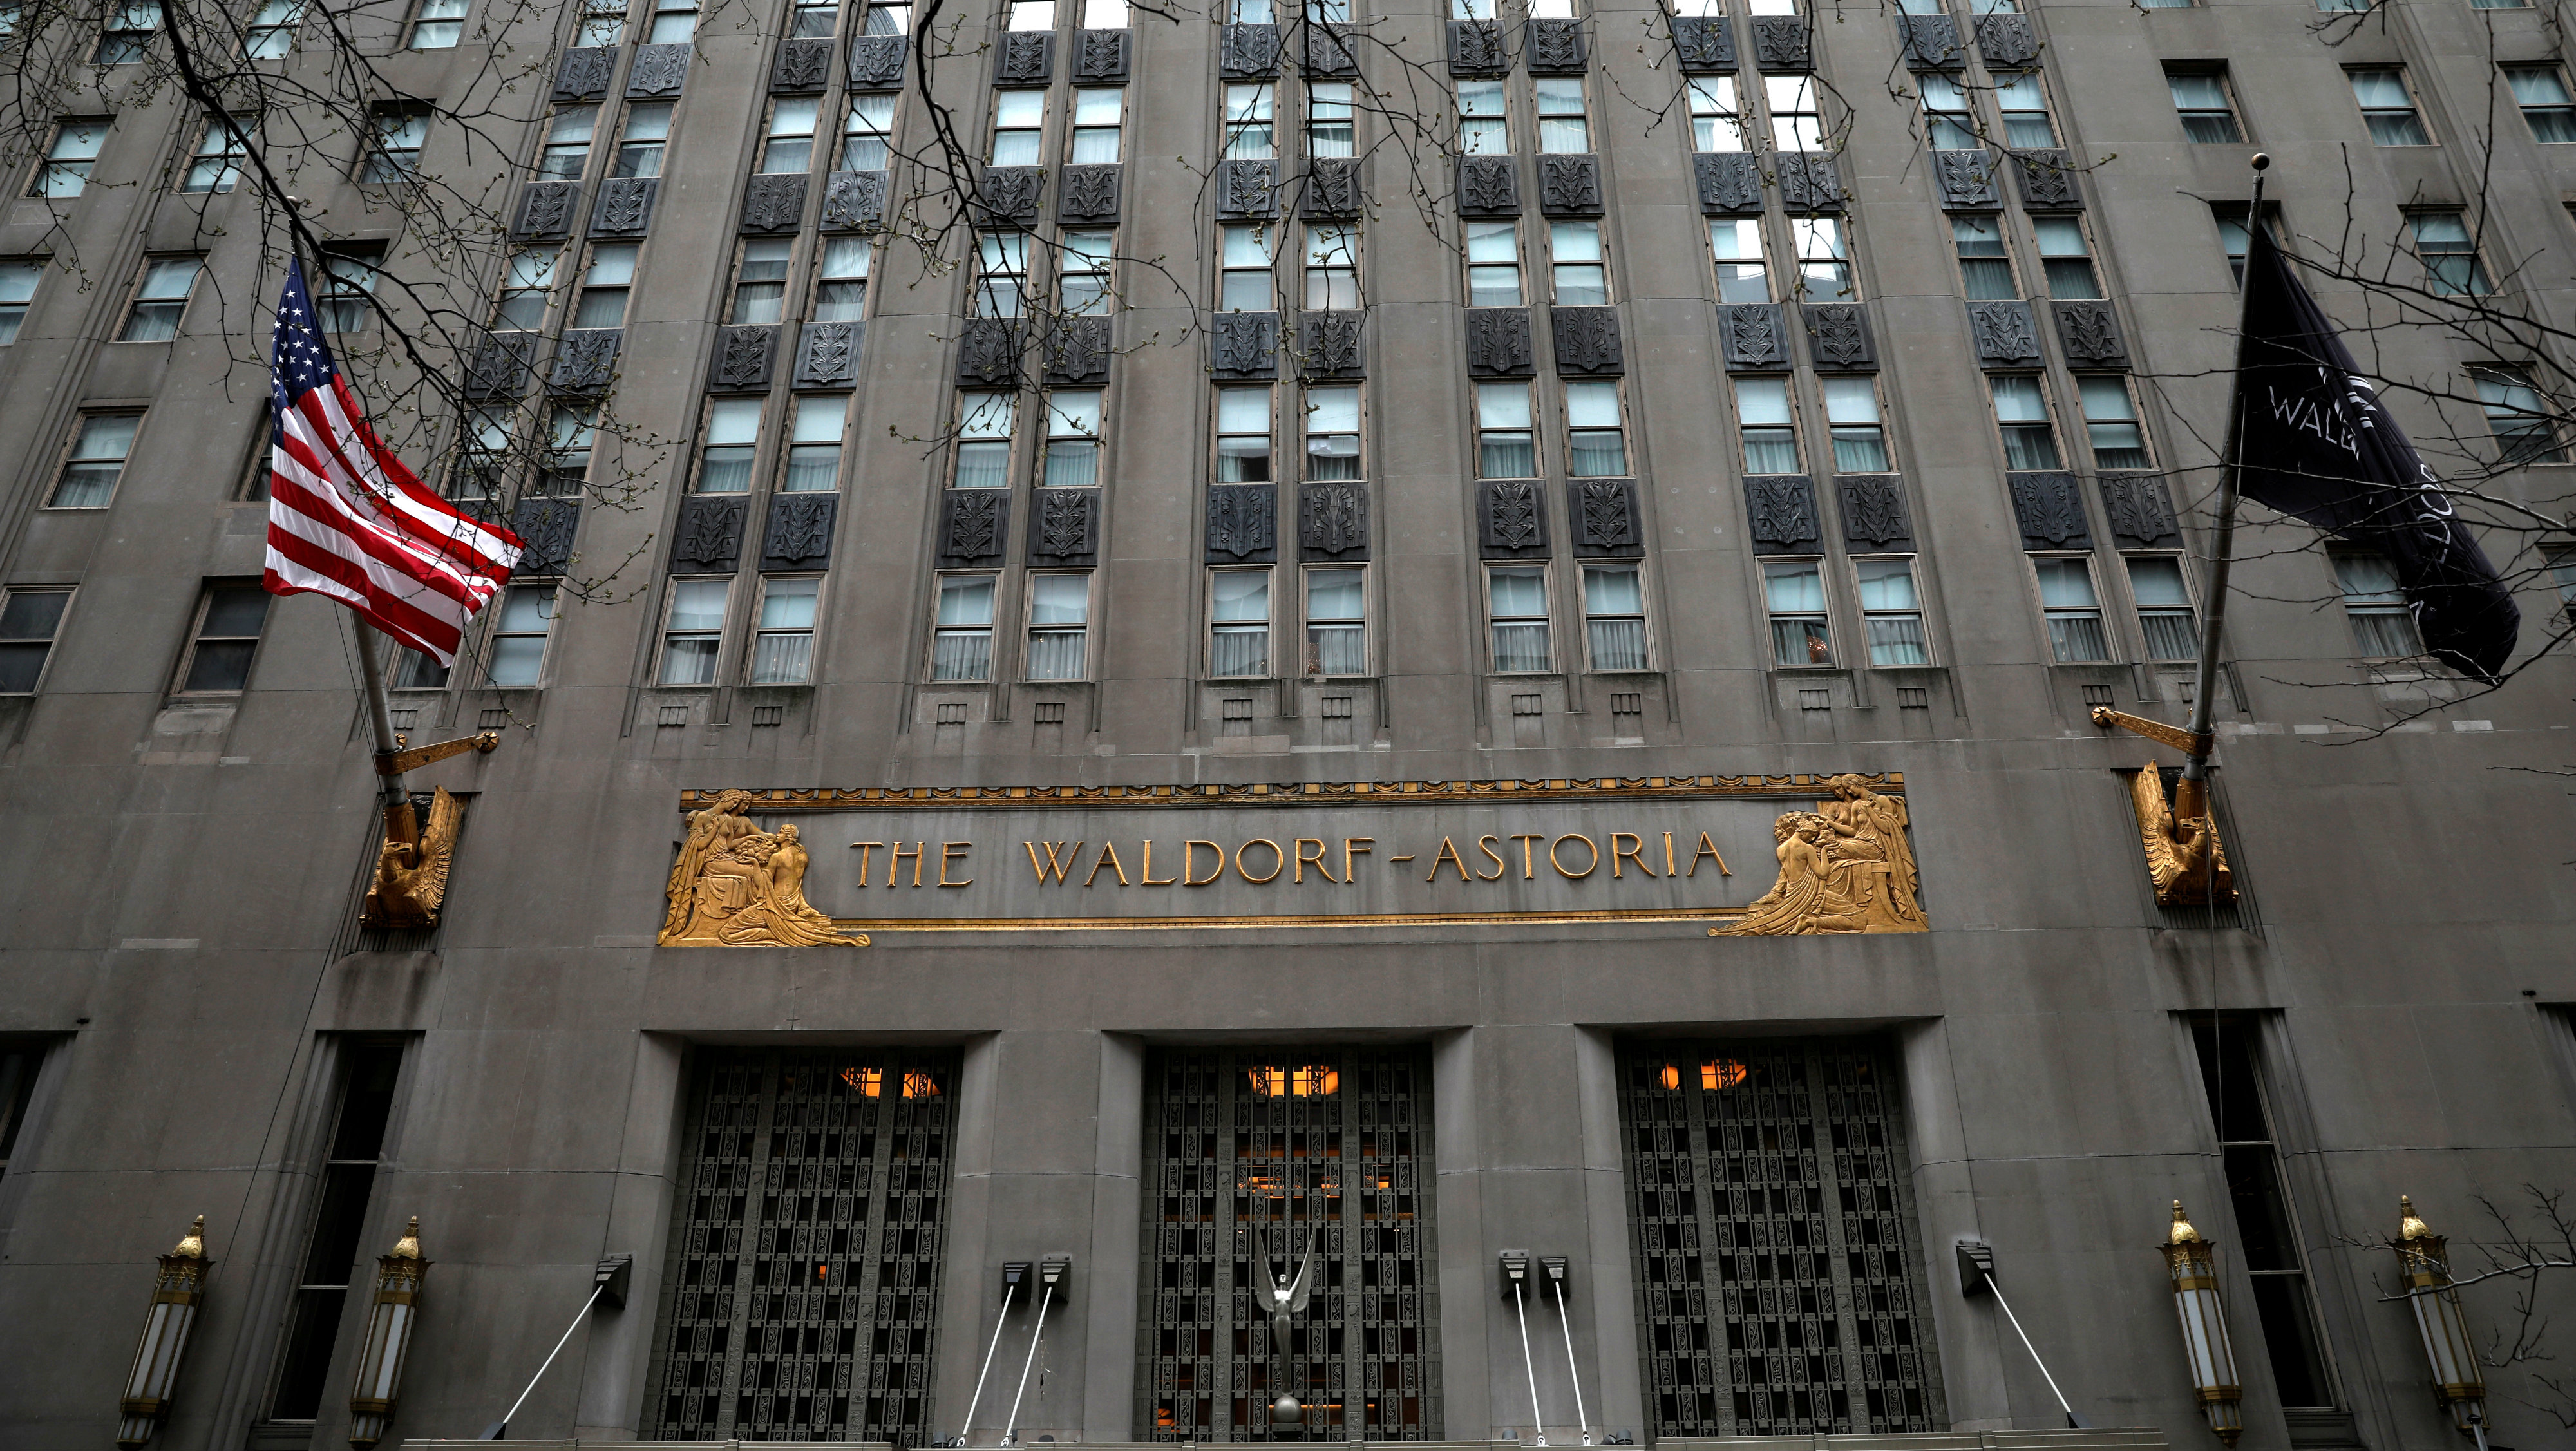 New York's Waldorf Astoria is now controlled by the Chinese